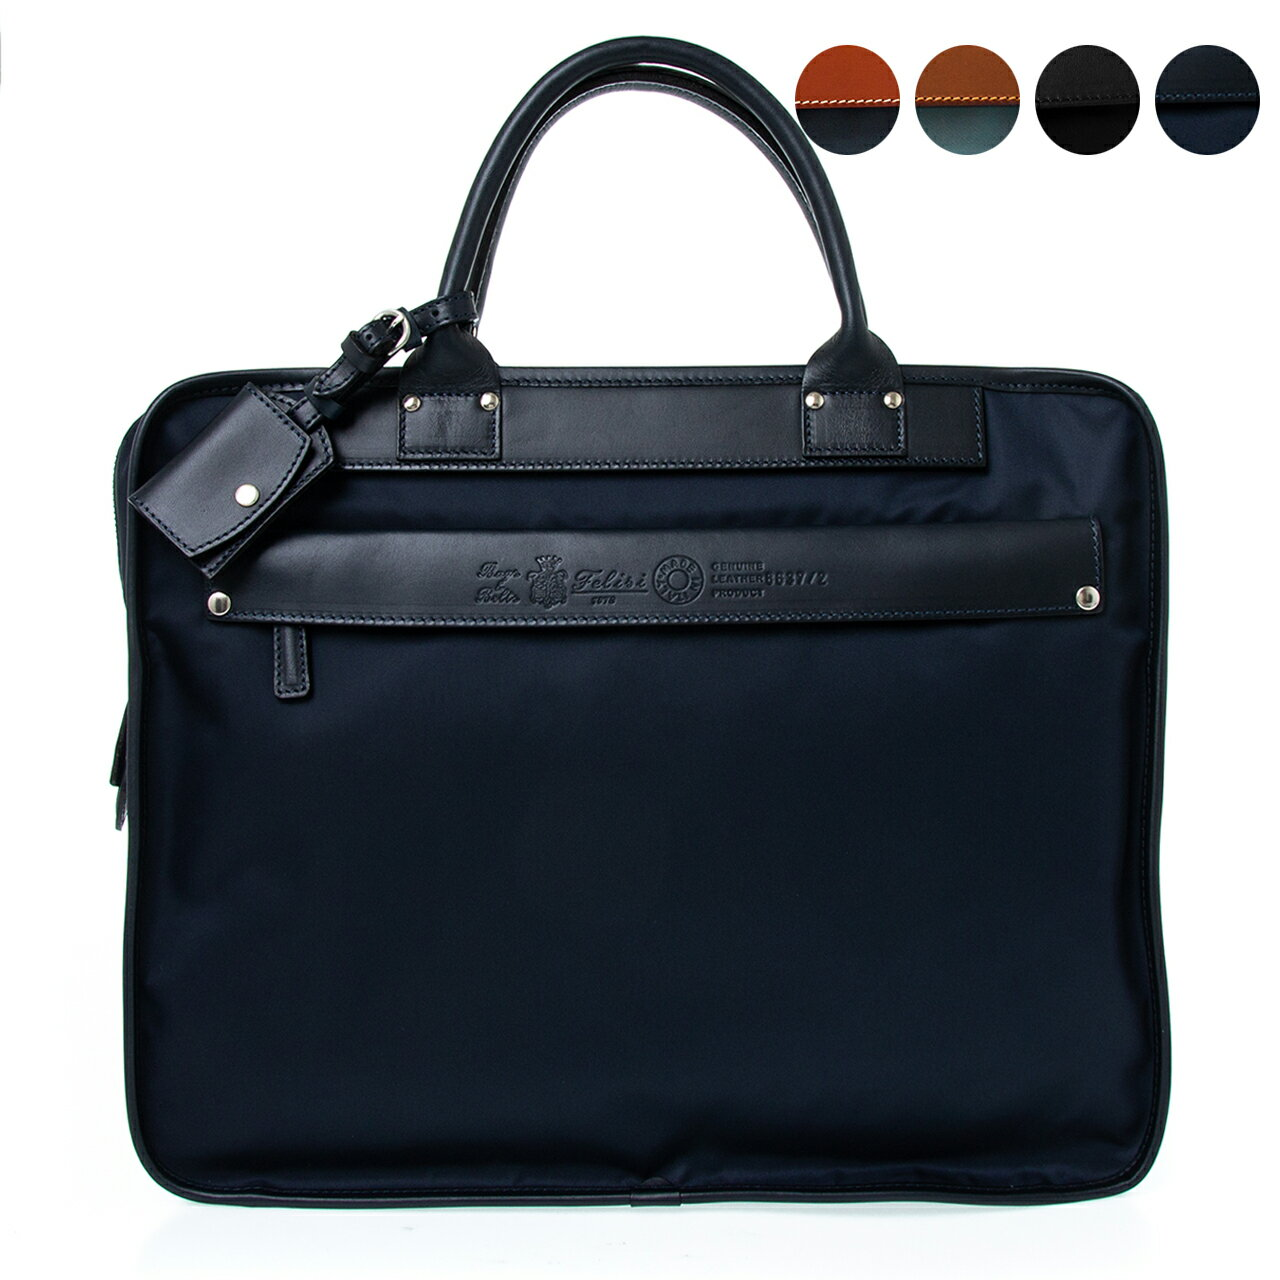 FELISI/フェリージ バッグ ブリーフケース A4 BUSINESS BAG 8637/2/DS [全5色]